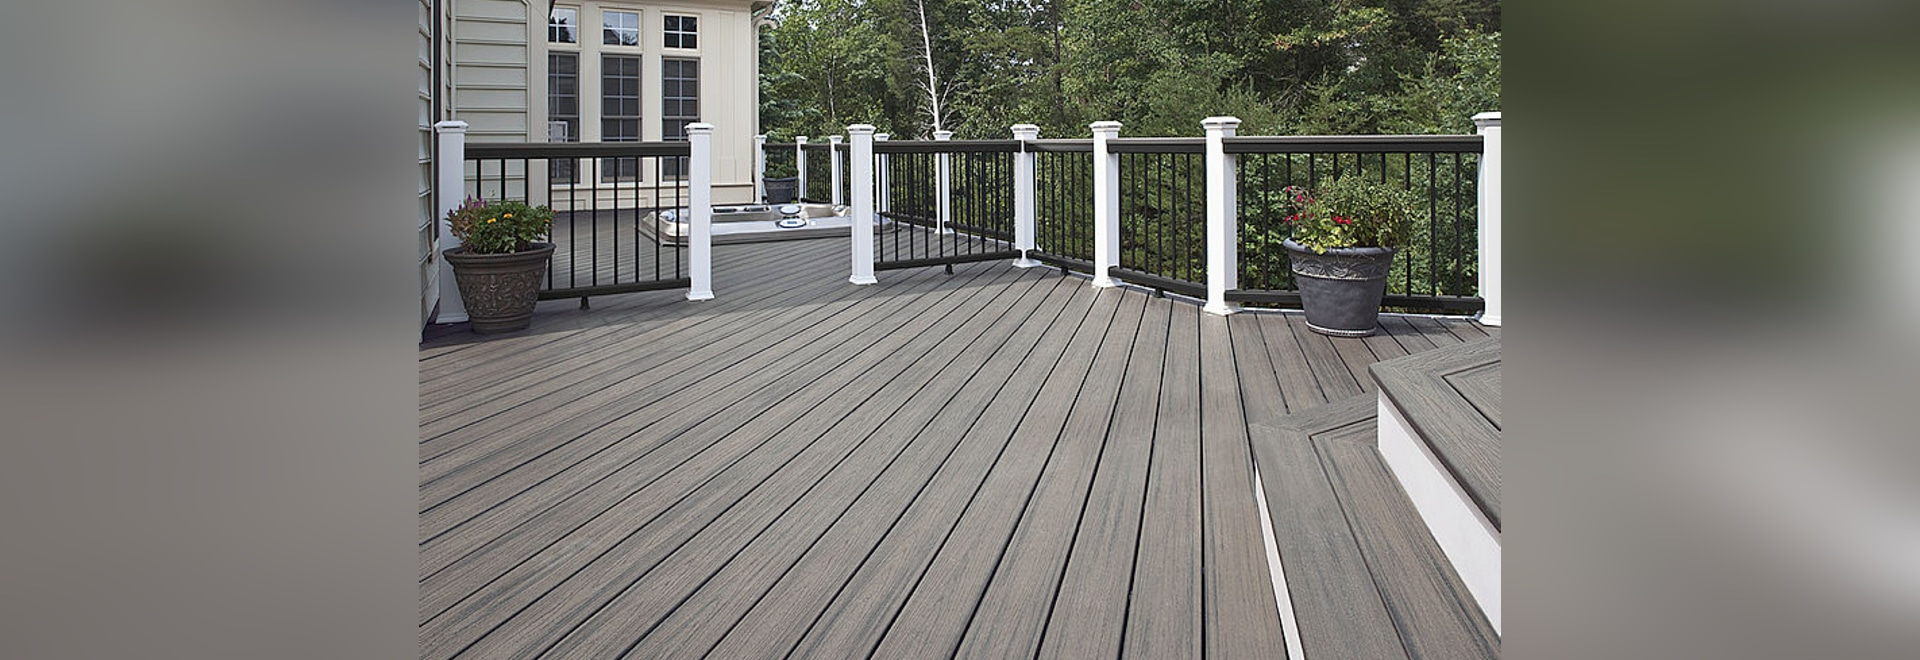 Company Takes Top Honors in All Performance Areas for the Composite Decking Industry